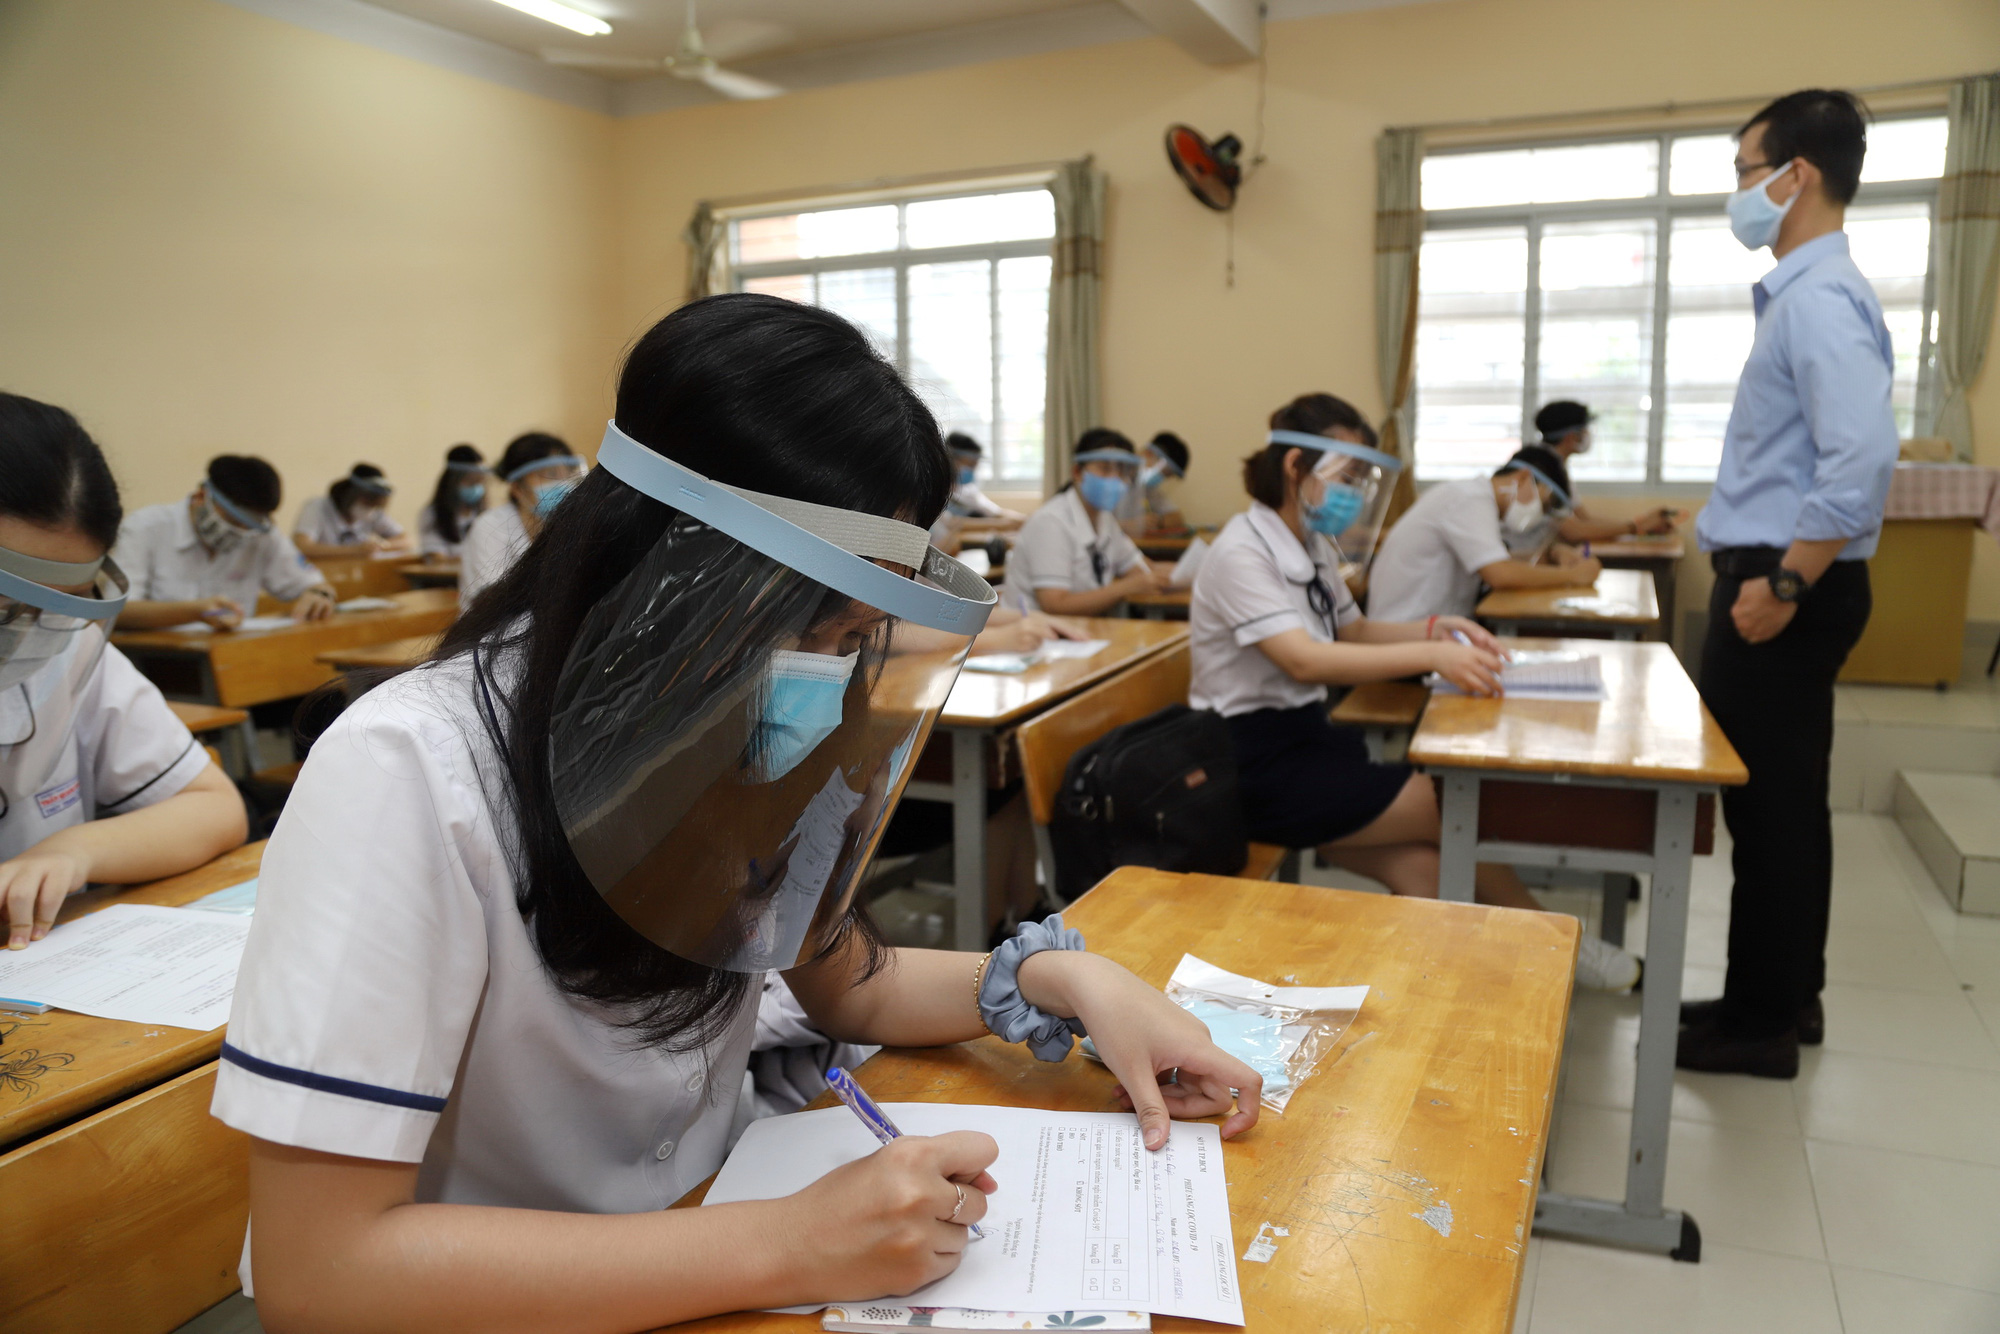 Overkill? Debate in Vietnam over necessity of face shields in class